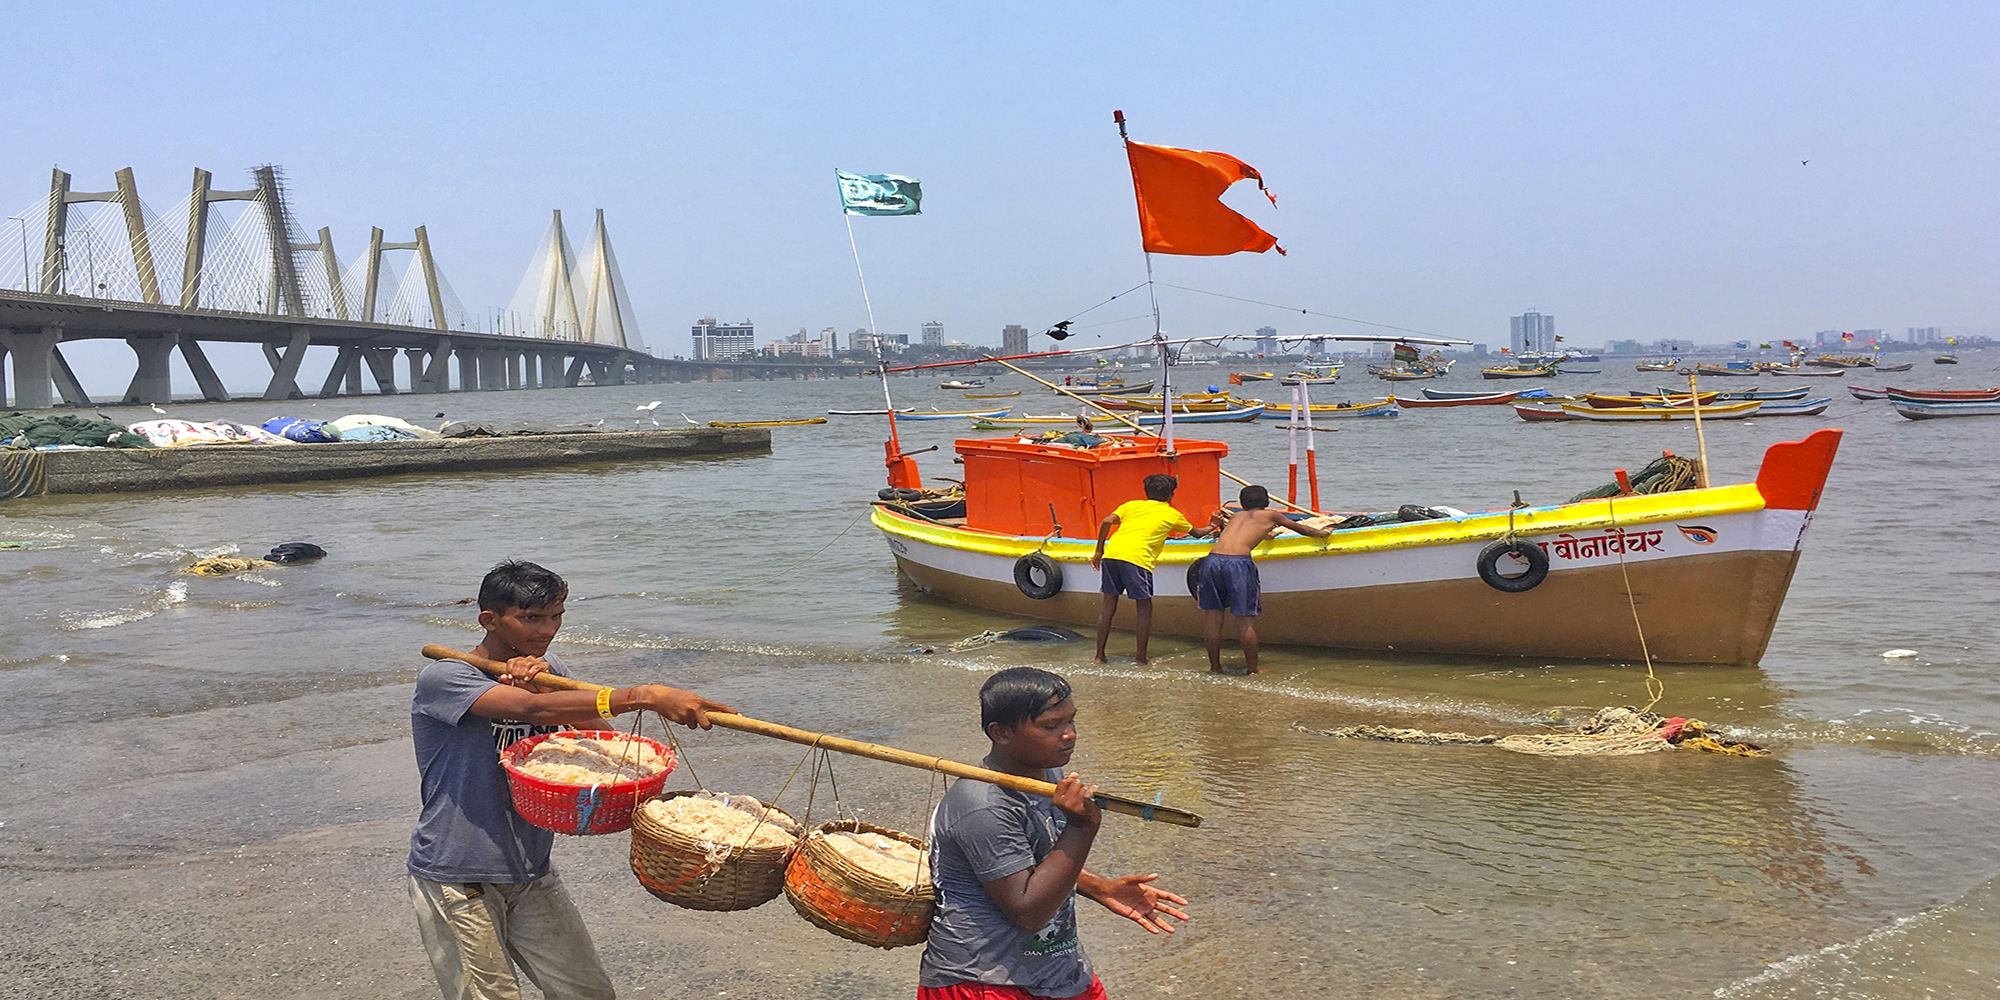 The boys at Worli Koliwada were moving all the fishes from the boat to their storage space so that they could sell them in the evening at the fish market. This is a regular process for them.